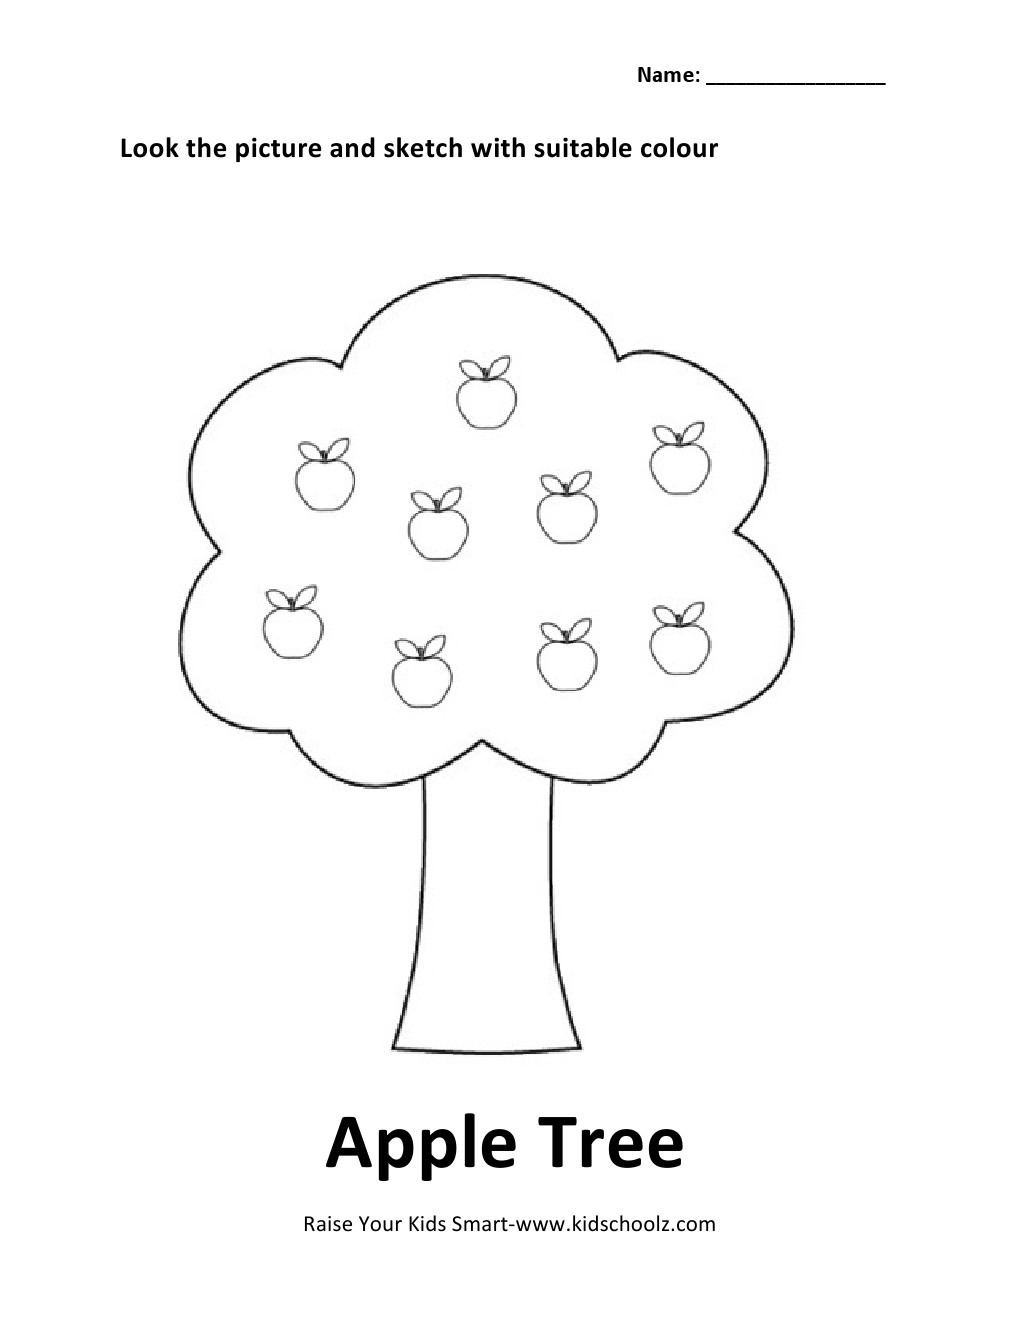 Uncategorized Apple Worksheets colouring worksheet apple tree kidschoolz tree2